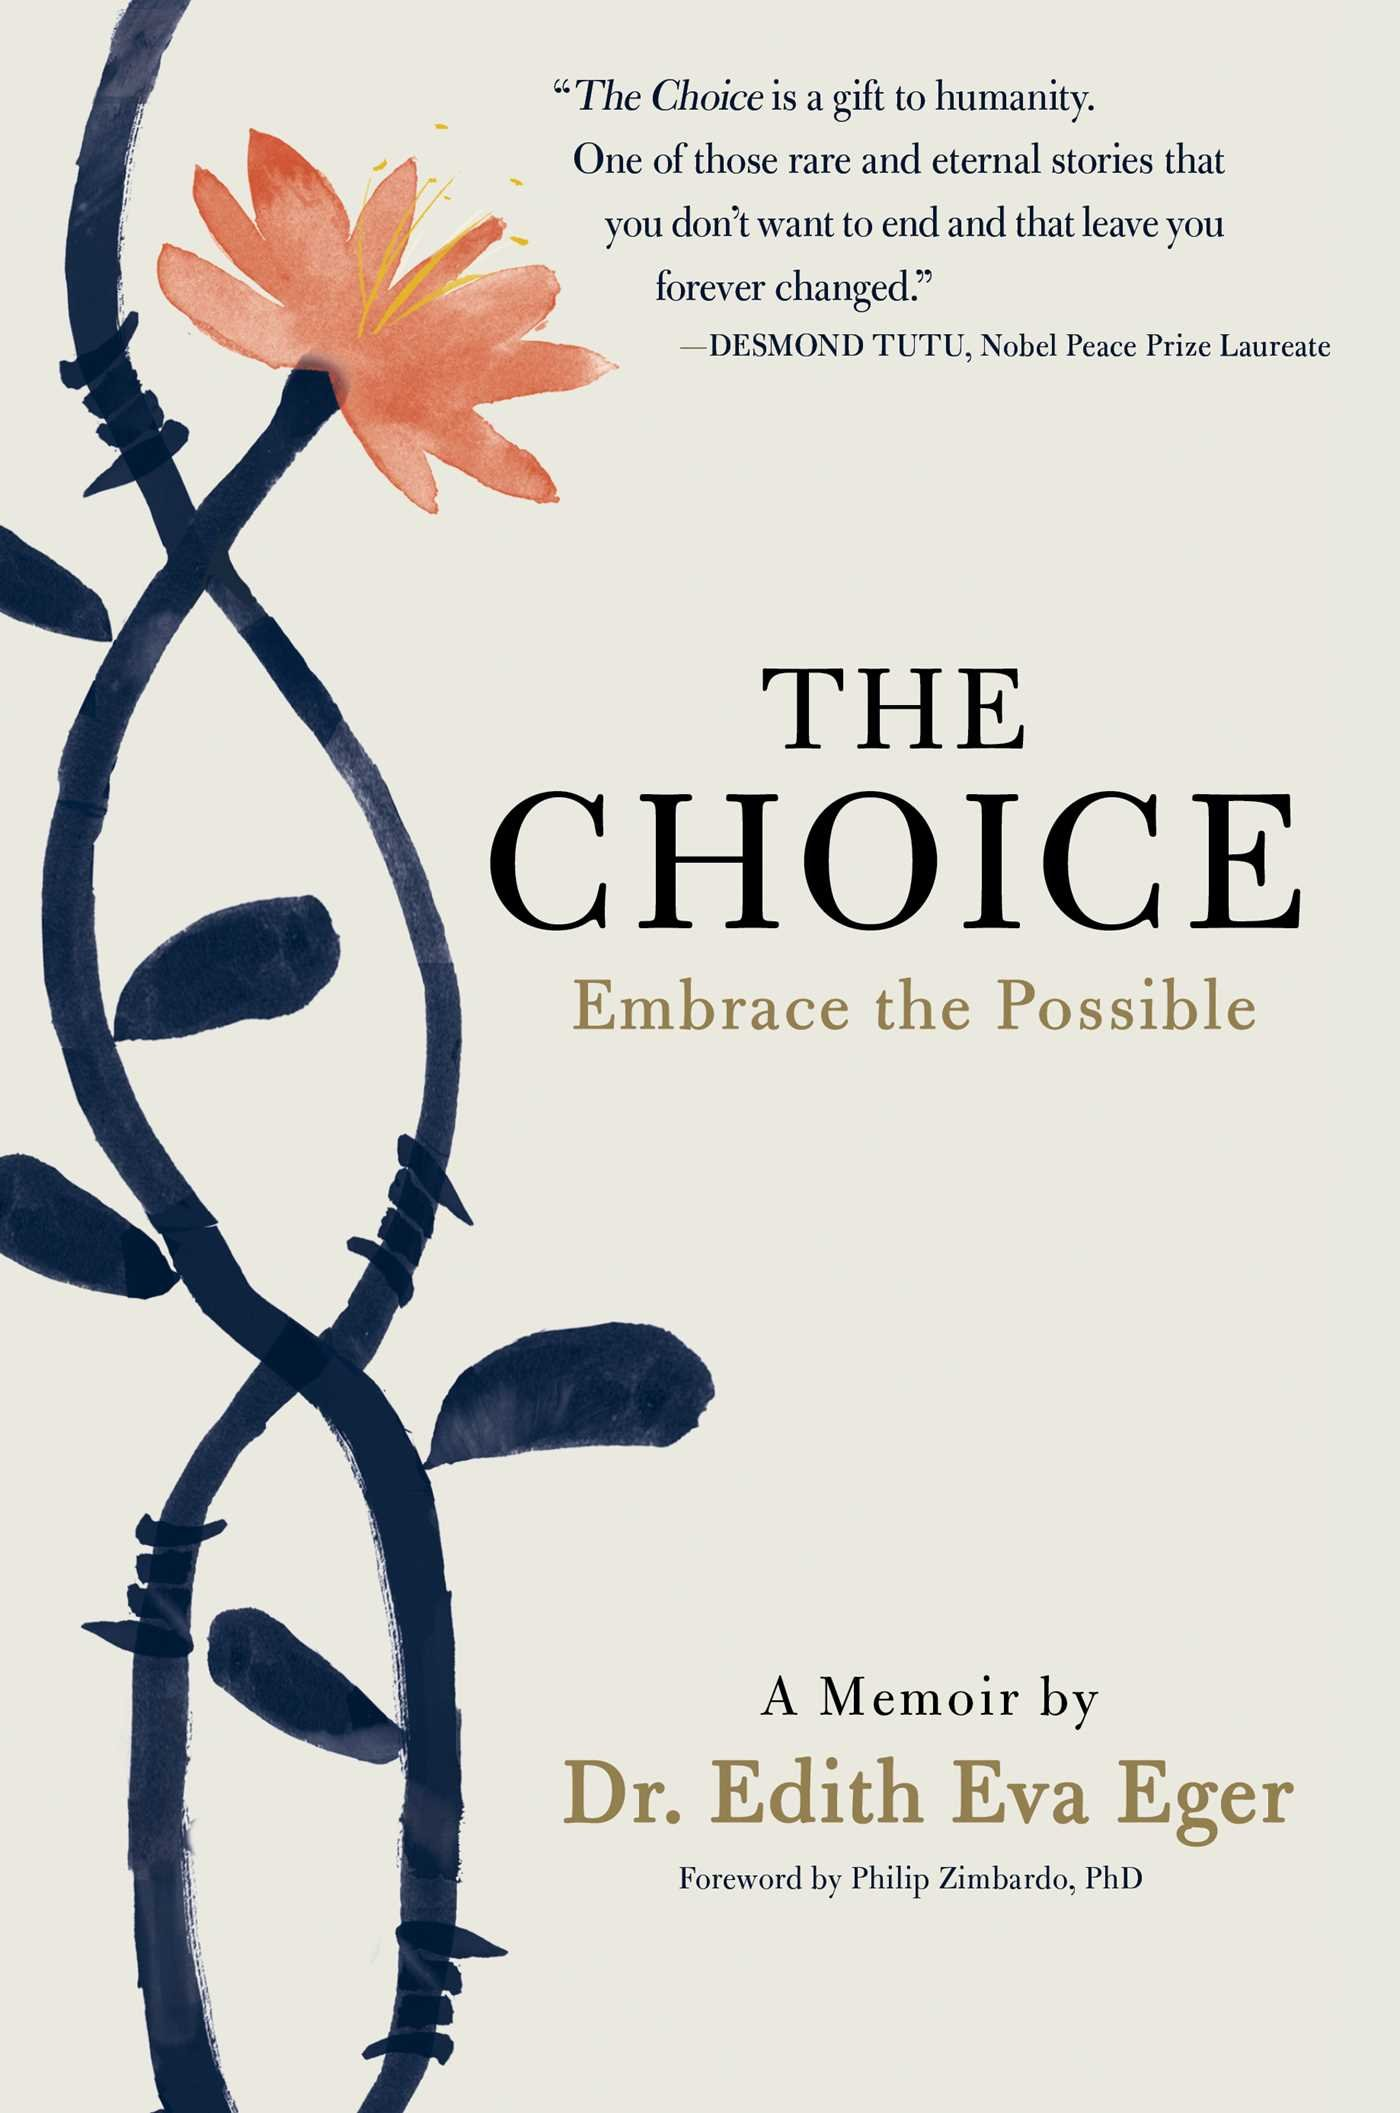 Image result for the choice embrace the possible